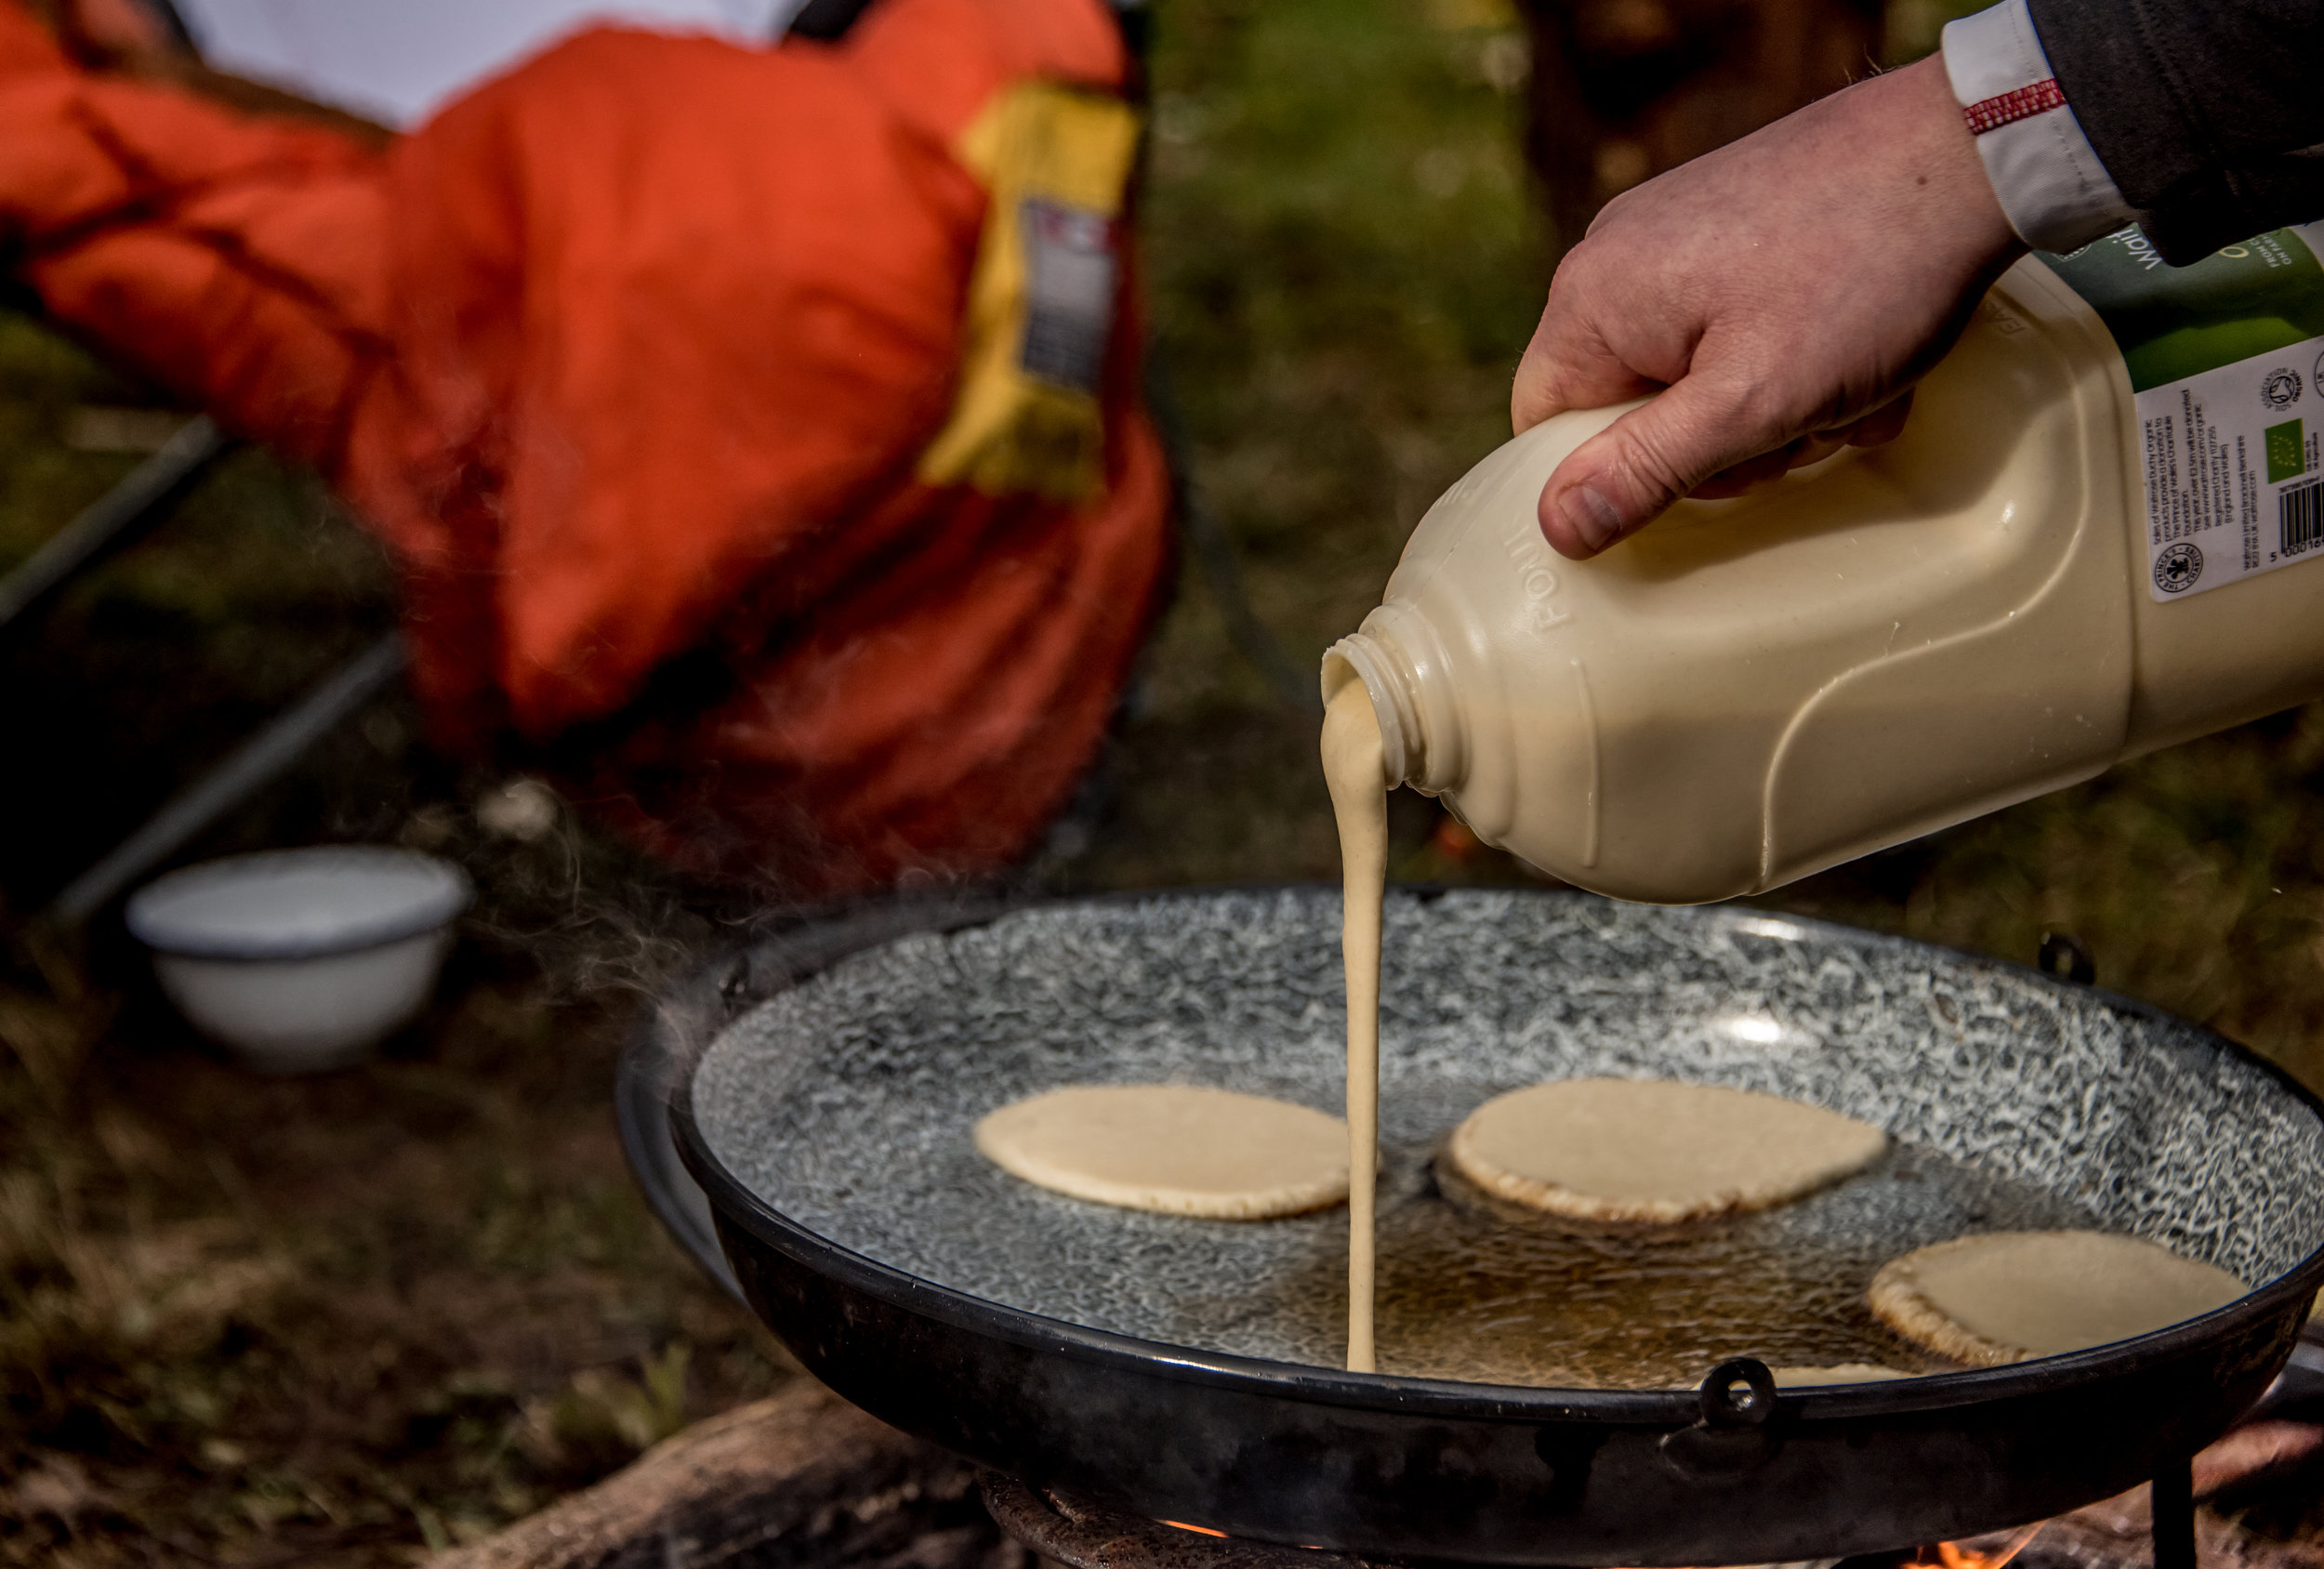 Go Wild Forest School Level 3 Training campfire cooking pancakes.jpg